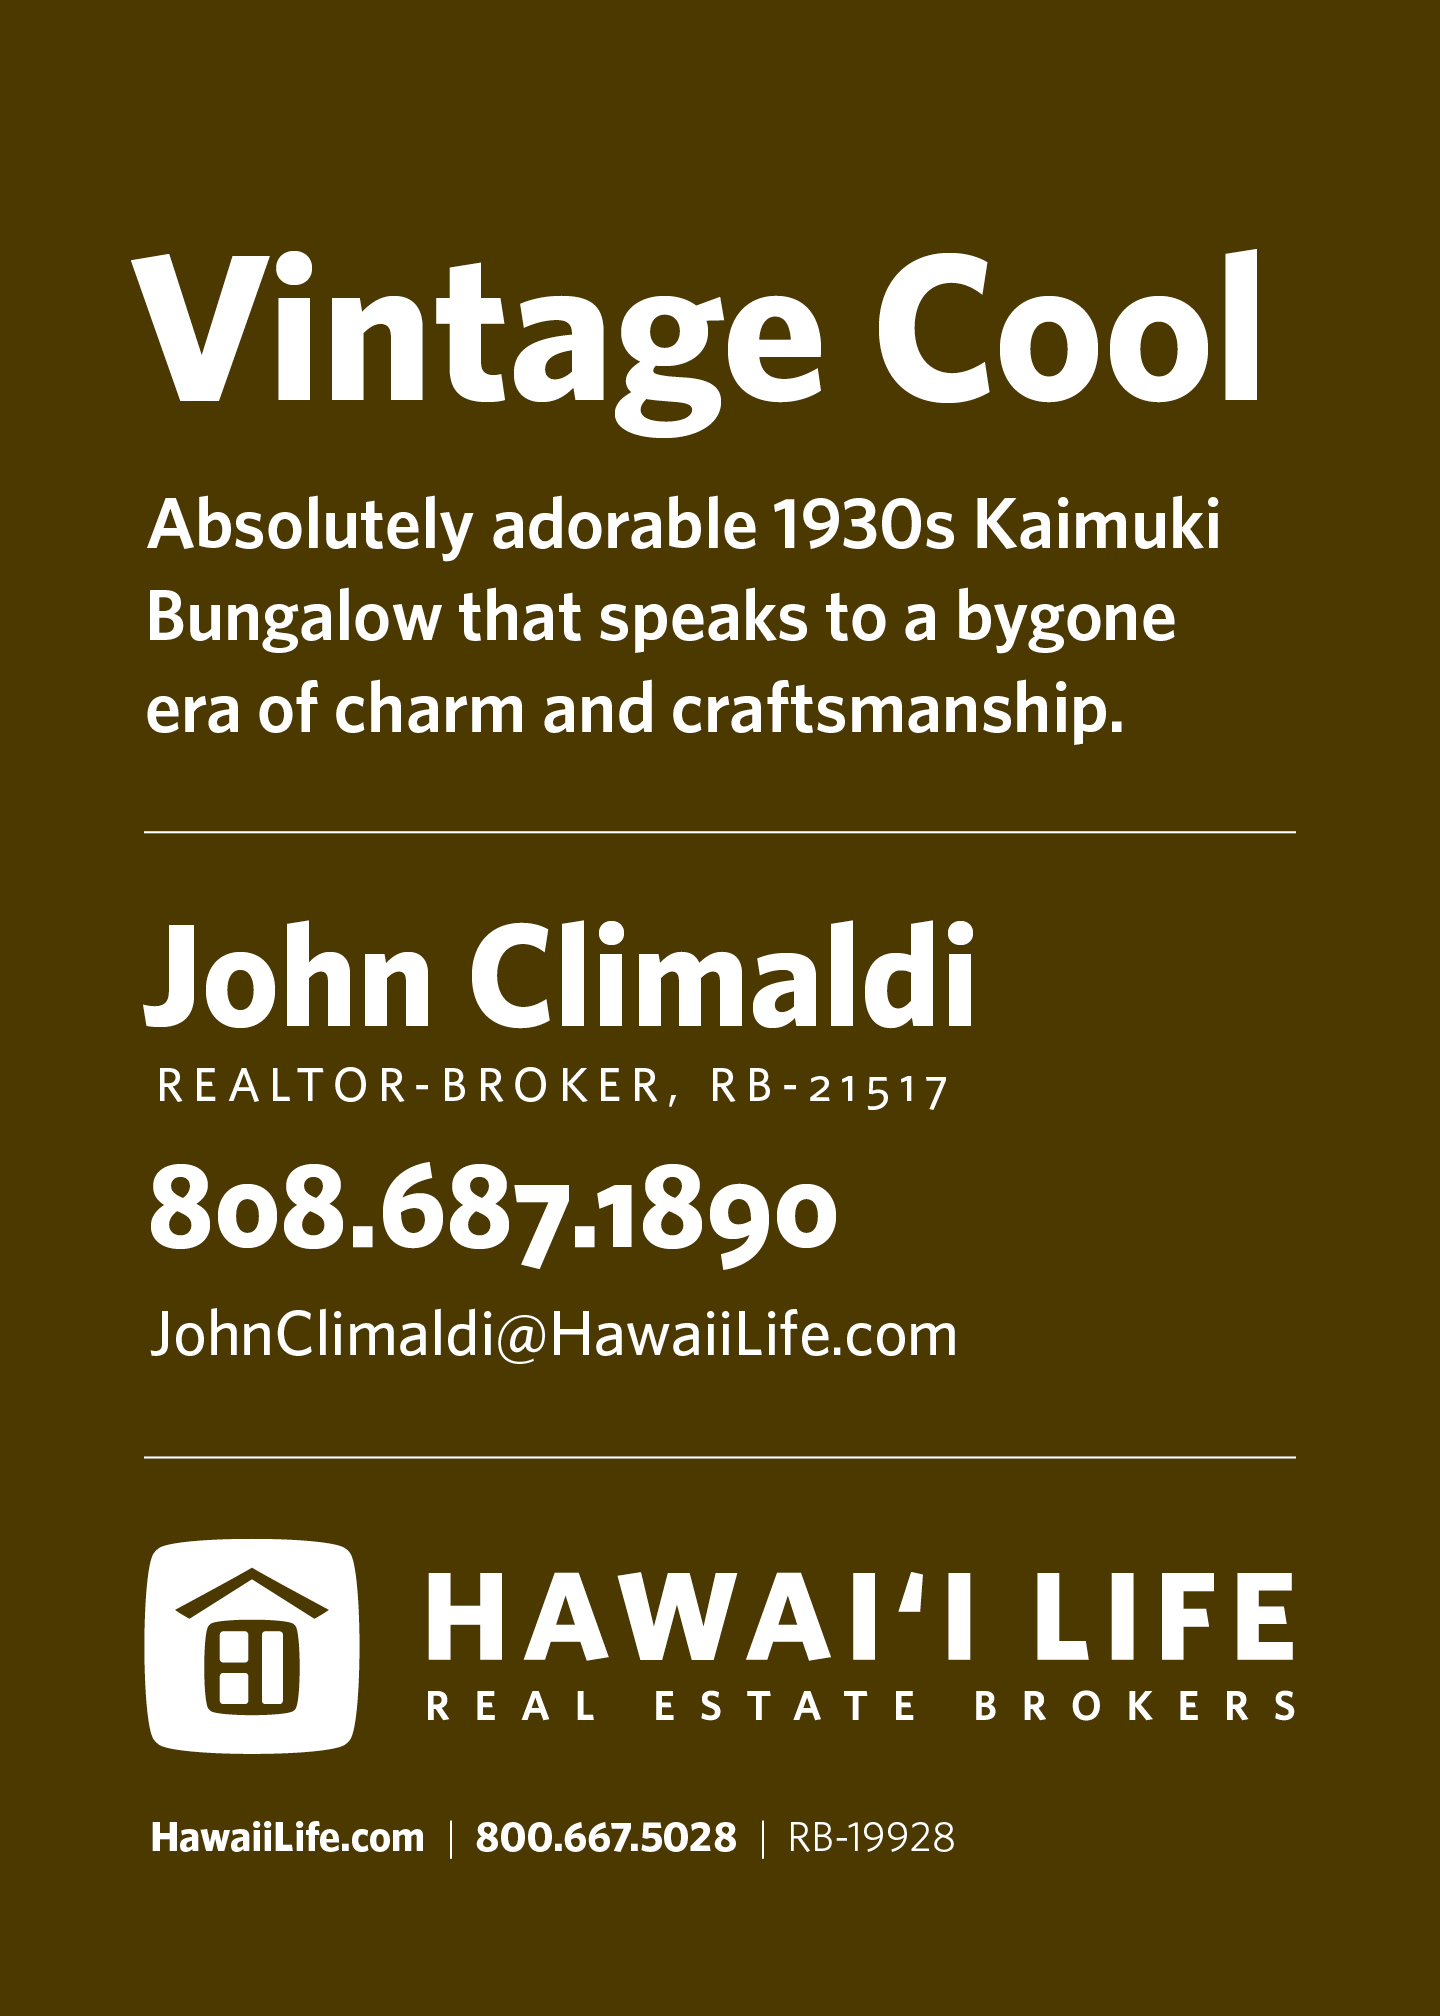 HL_JohnClimaldi_CustomSign_95518thAve_20x28_brown_web.jpg